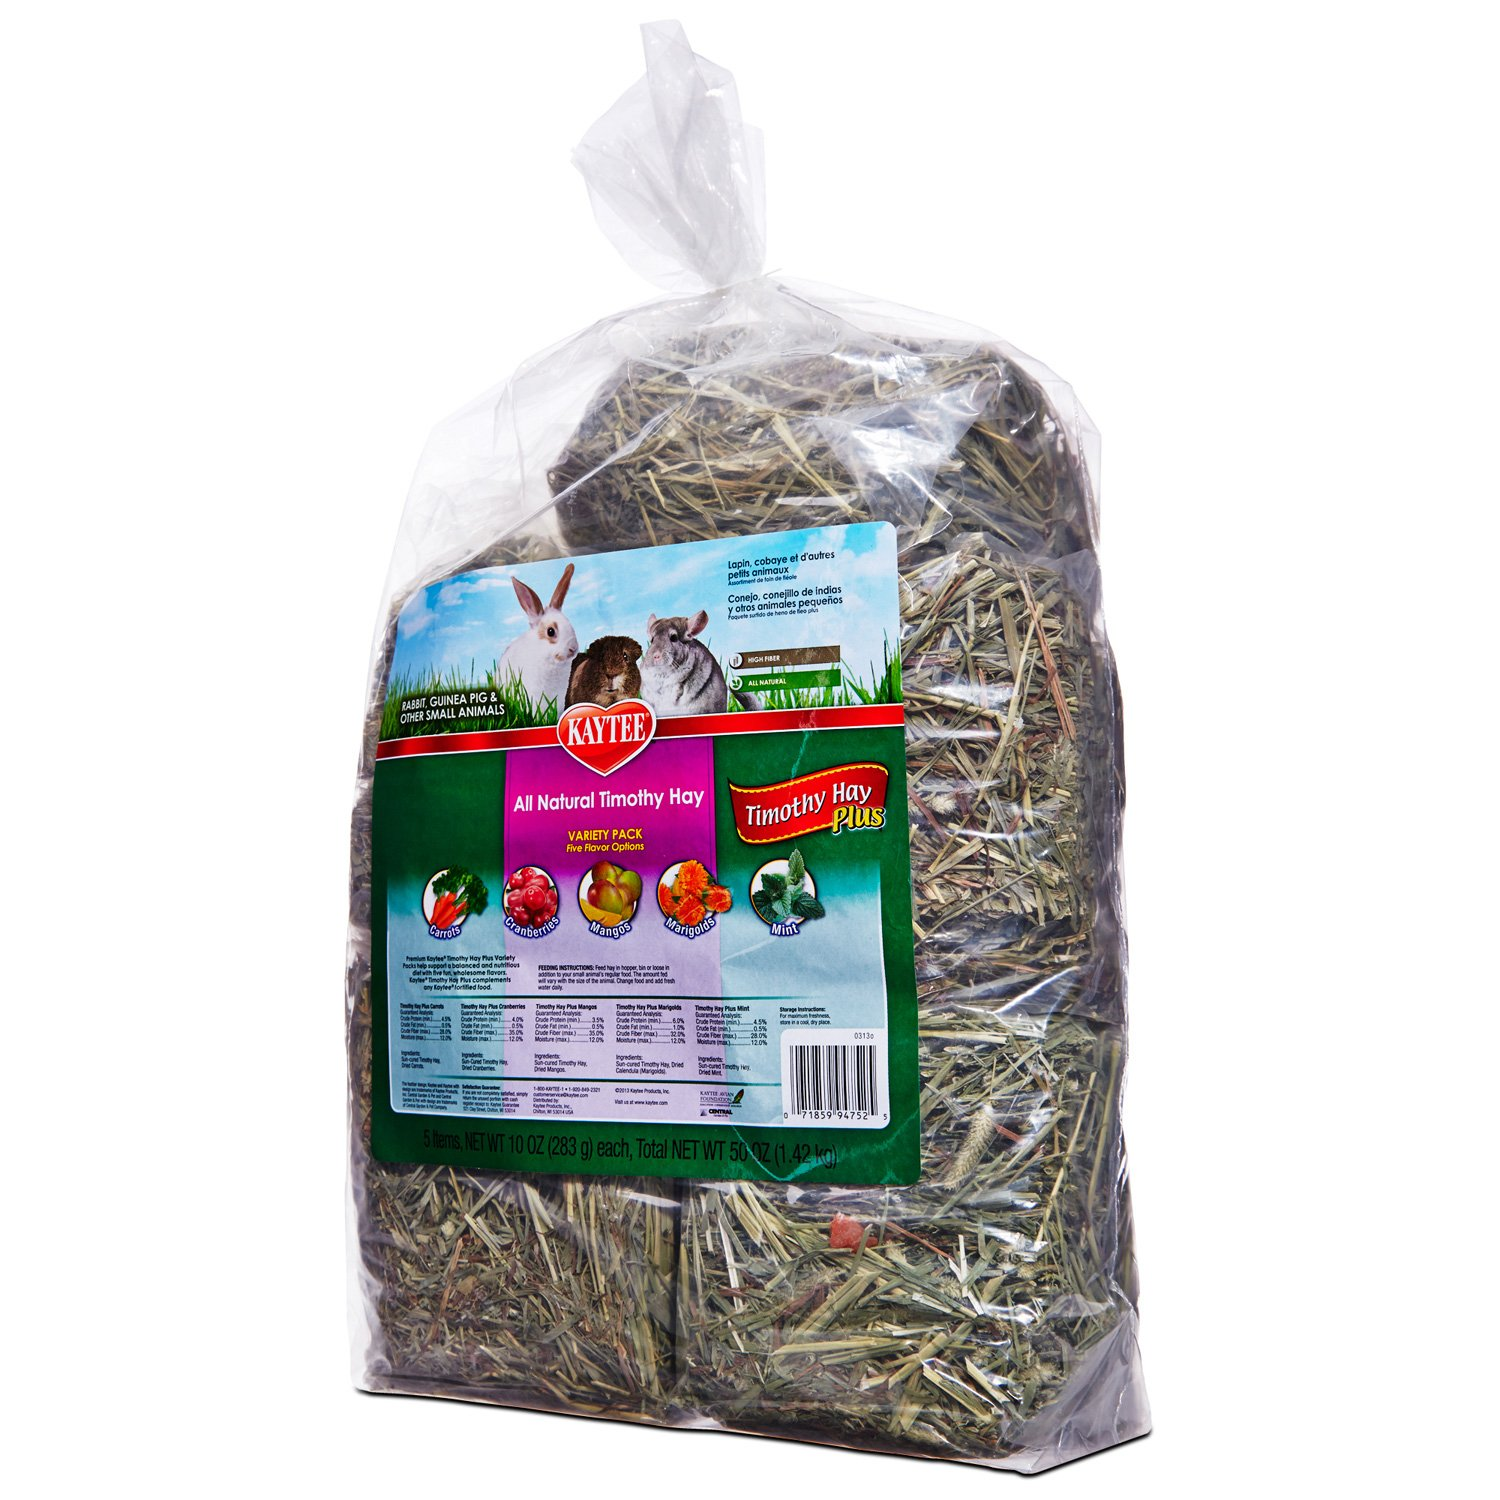 Kaytee All Natural Timothy Hay Plus Variety Pack for Rabbits & Small Animals